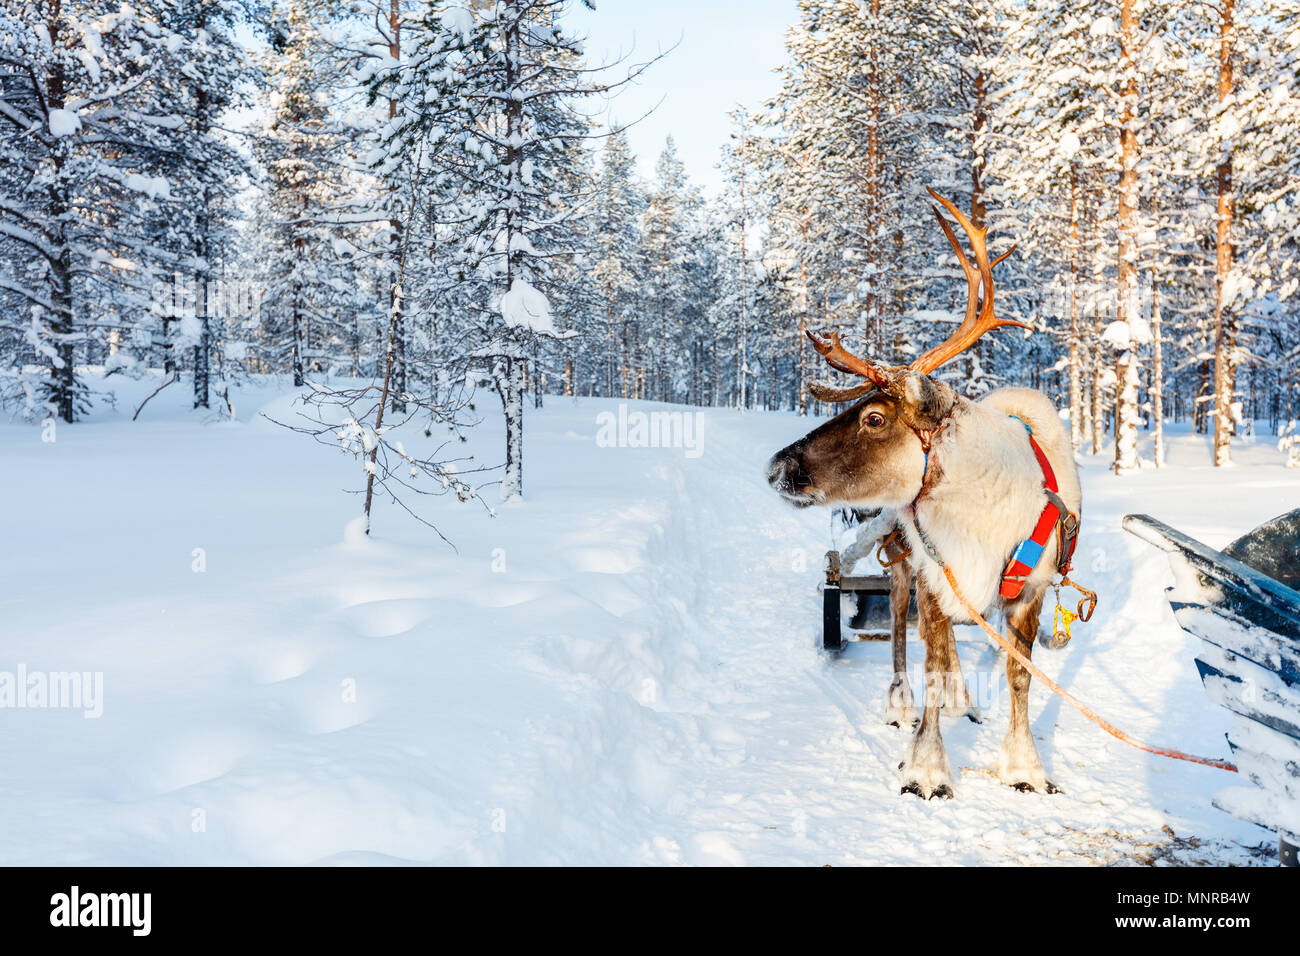 Reindeer in a winter forest in Finnish Lapland - Stock Image